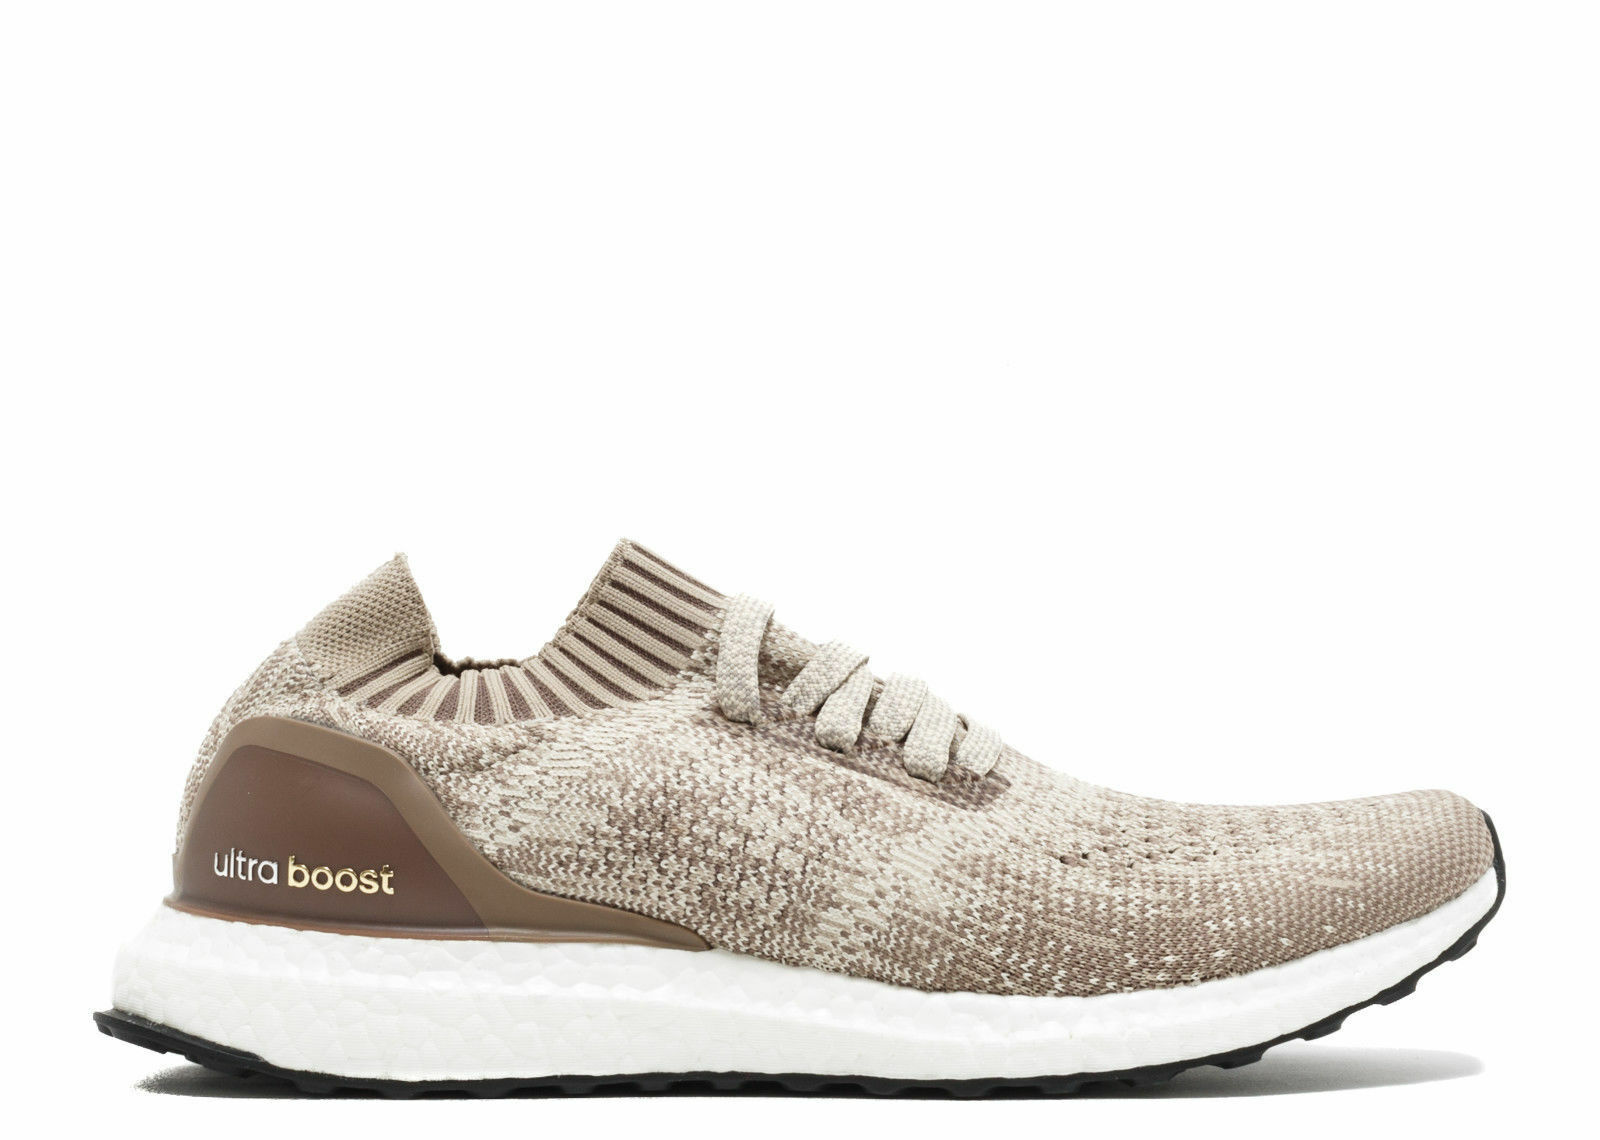 New Men's  ADIDAS ULTRA BOOST Uncaged BB4488 - Clear Brown